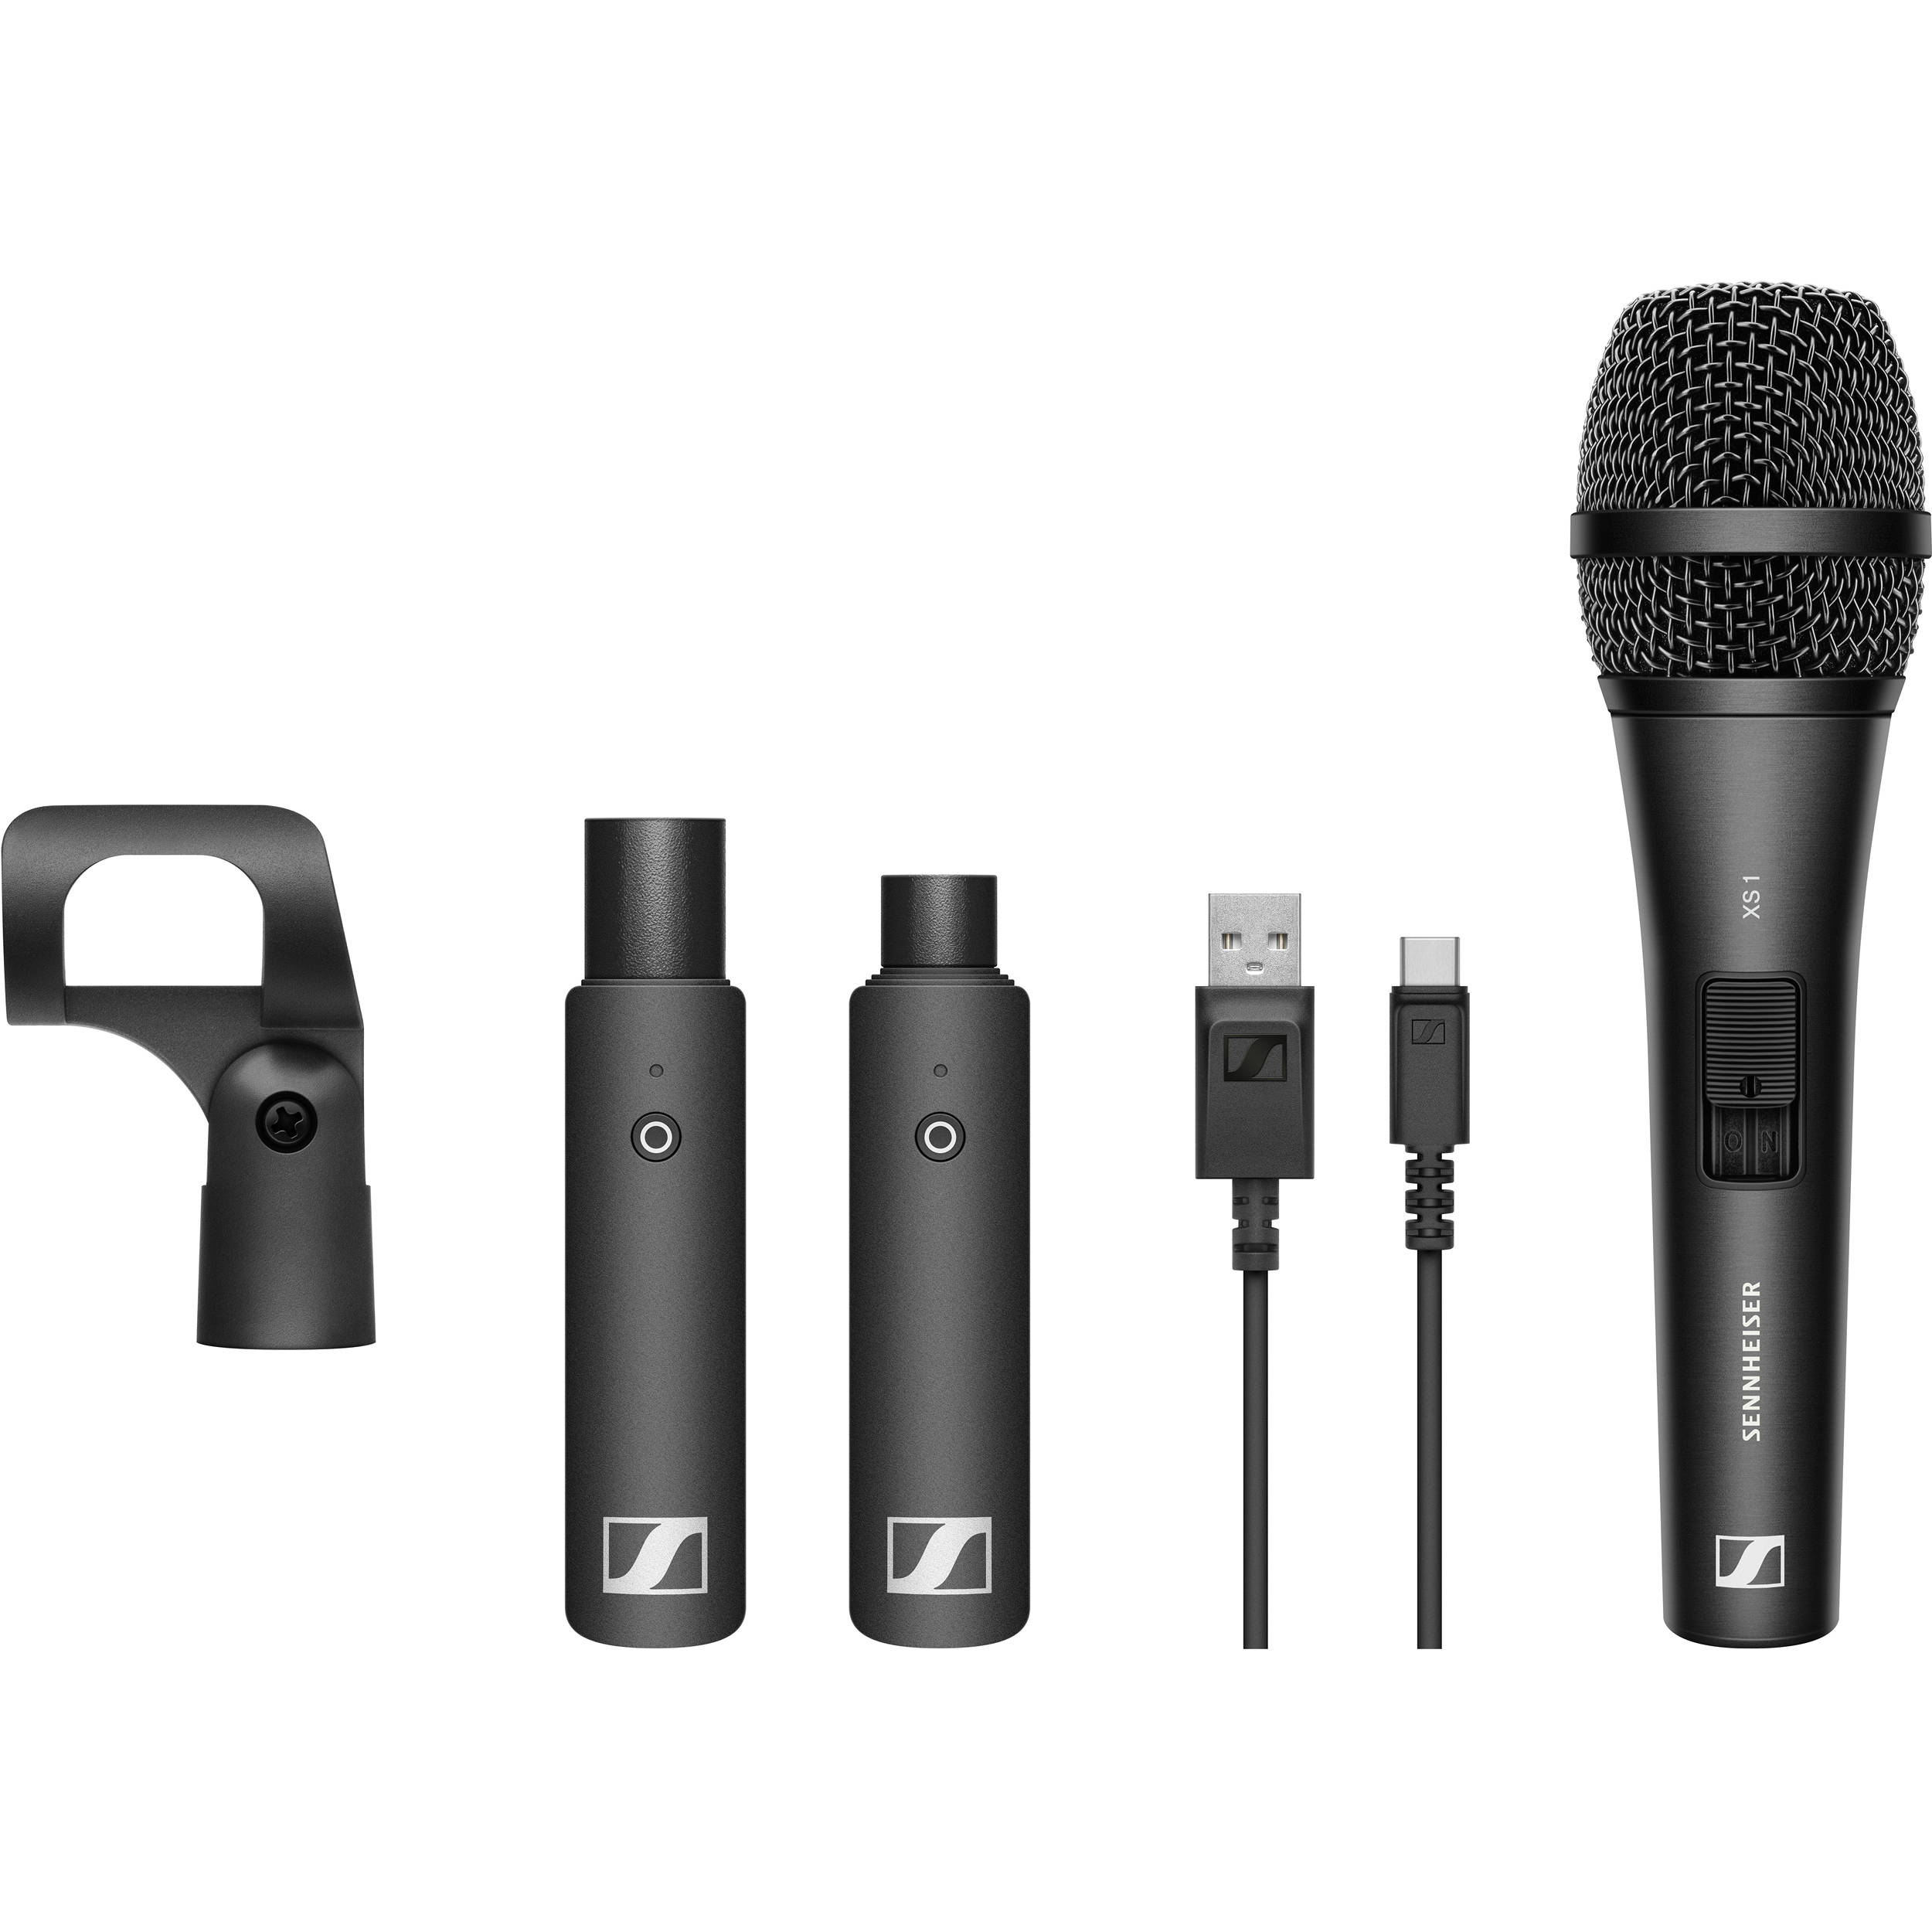 Sennheiser Xsw-D Portabele Interview Set Microphone Pro Audio audio